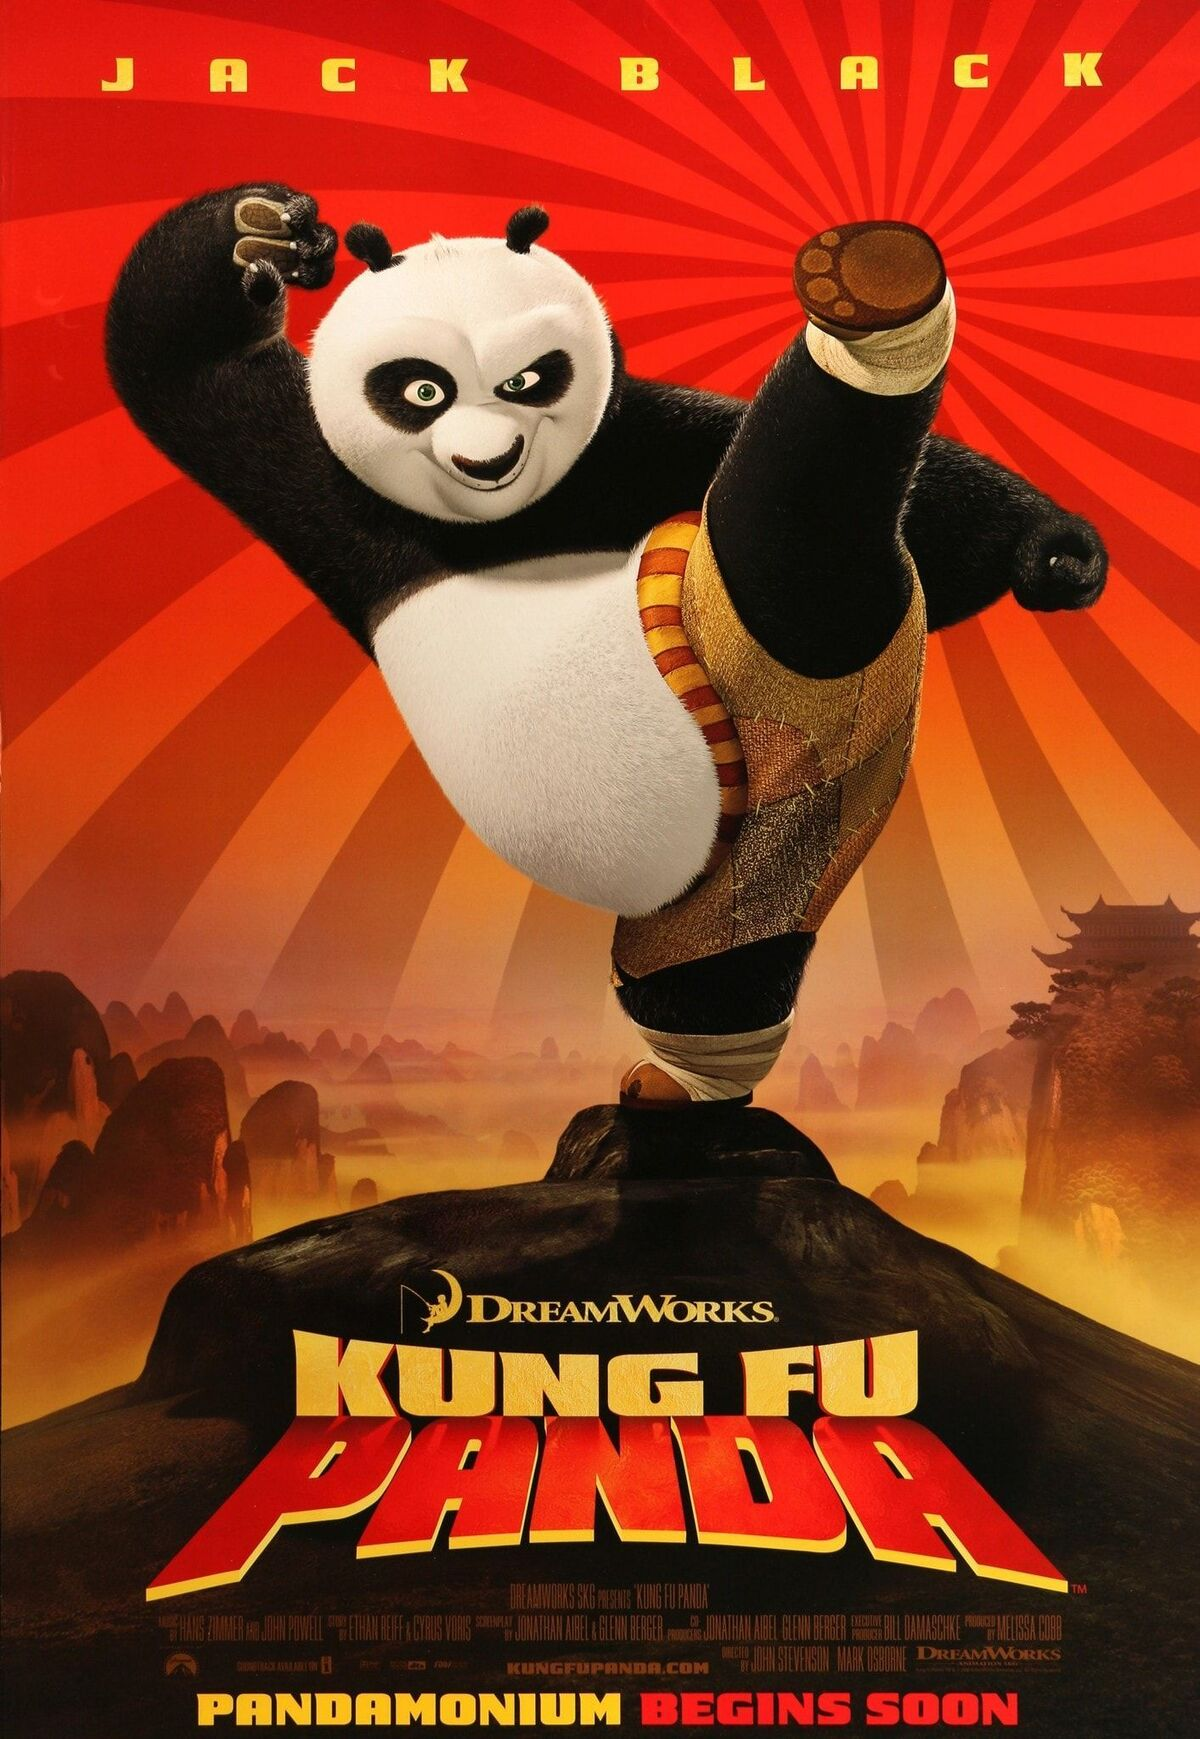 Kung Fu Panda 4 : Release Date , Cast and Everything a Fan Should Know - Finance Rewind